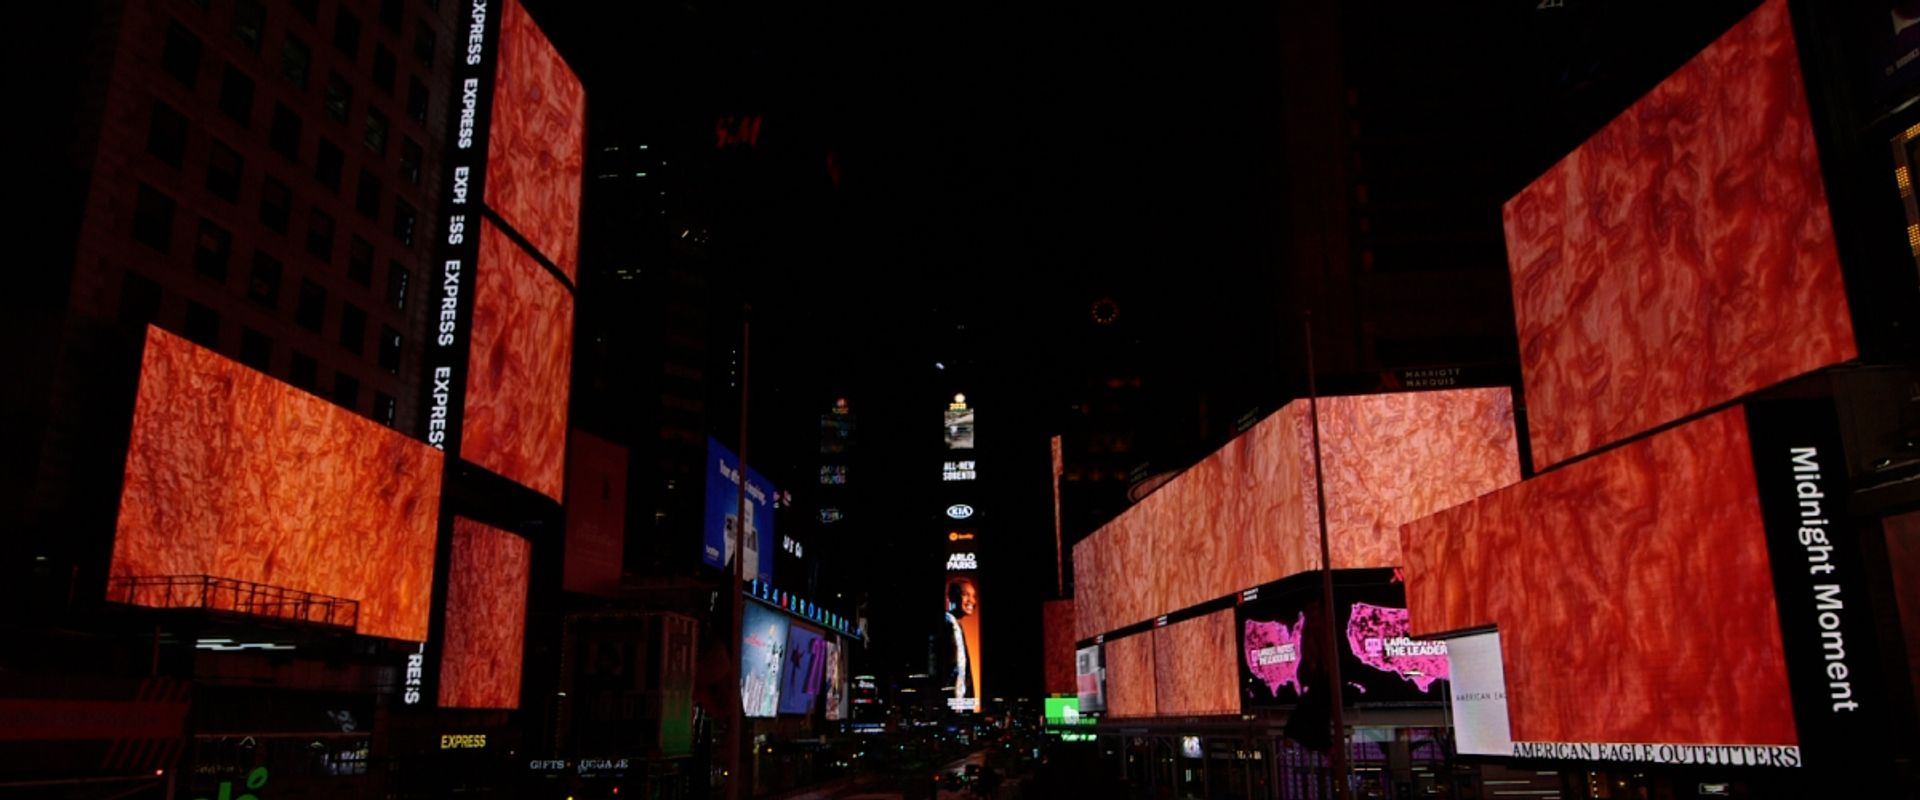 Sondra Perry 's digital work Flesh Wall is currently taking over Times Square's billboards as part of the site's Midnight Moment monthly programme of artist interventions